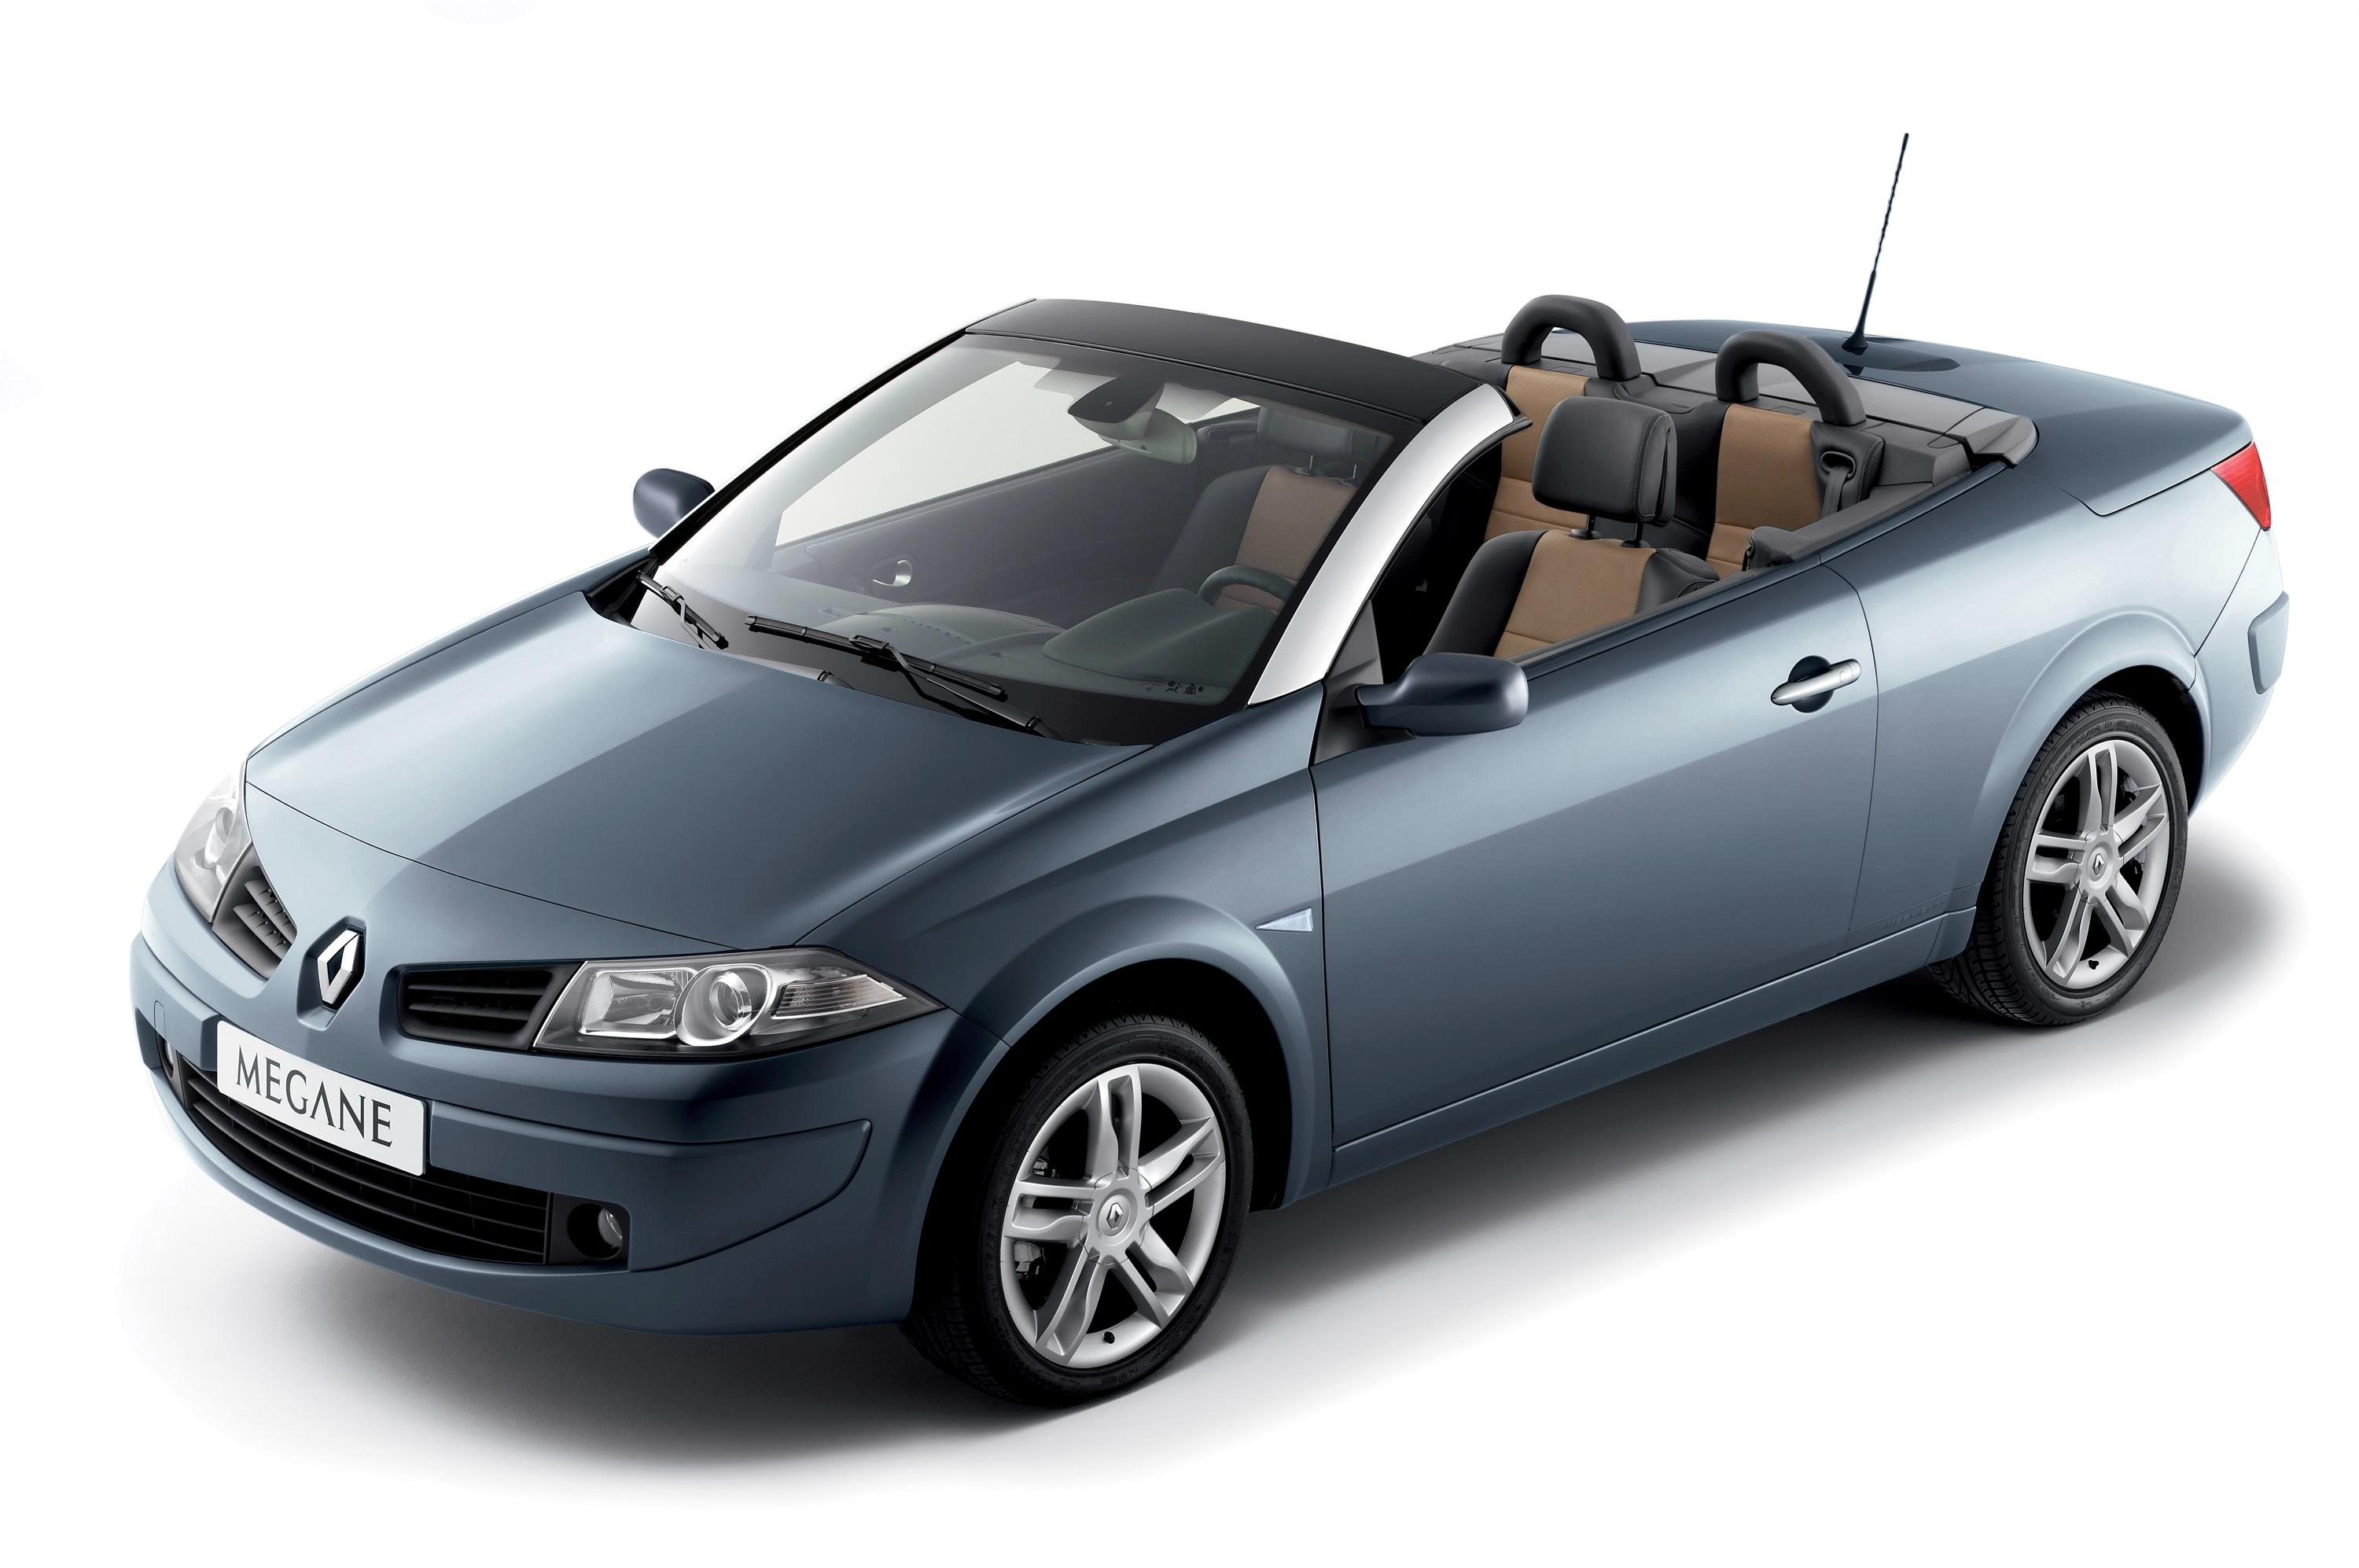 2006 Renault Megane Coupe Cabriolet Exception Top Speed